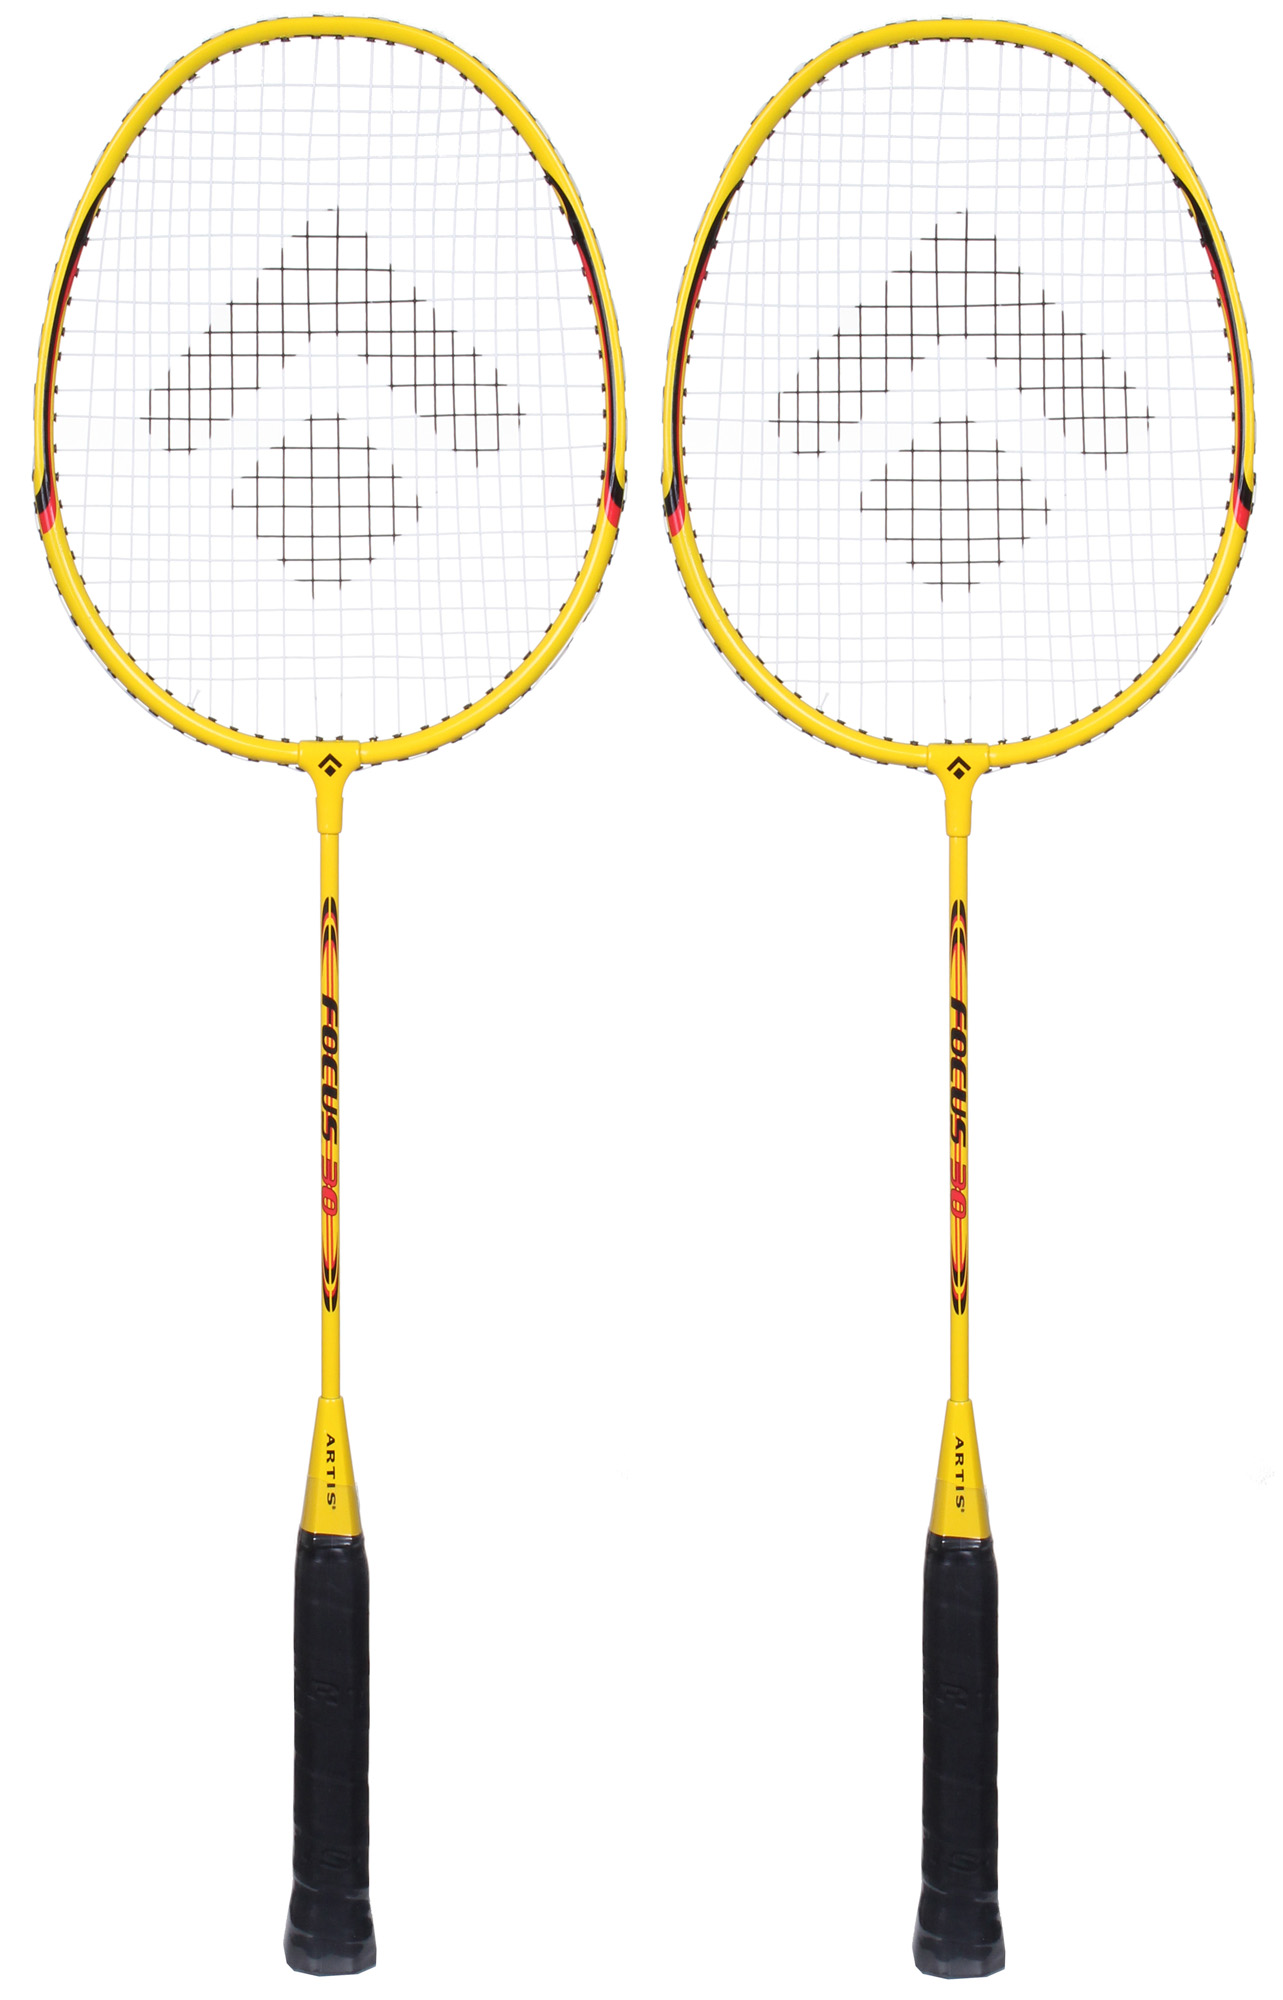 Artis Focus 30 badmintonový set